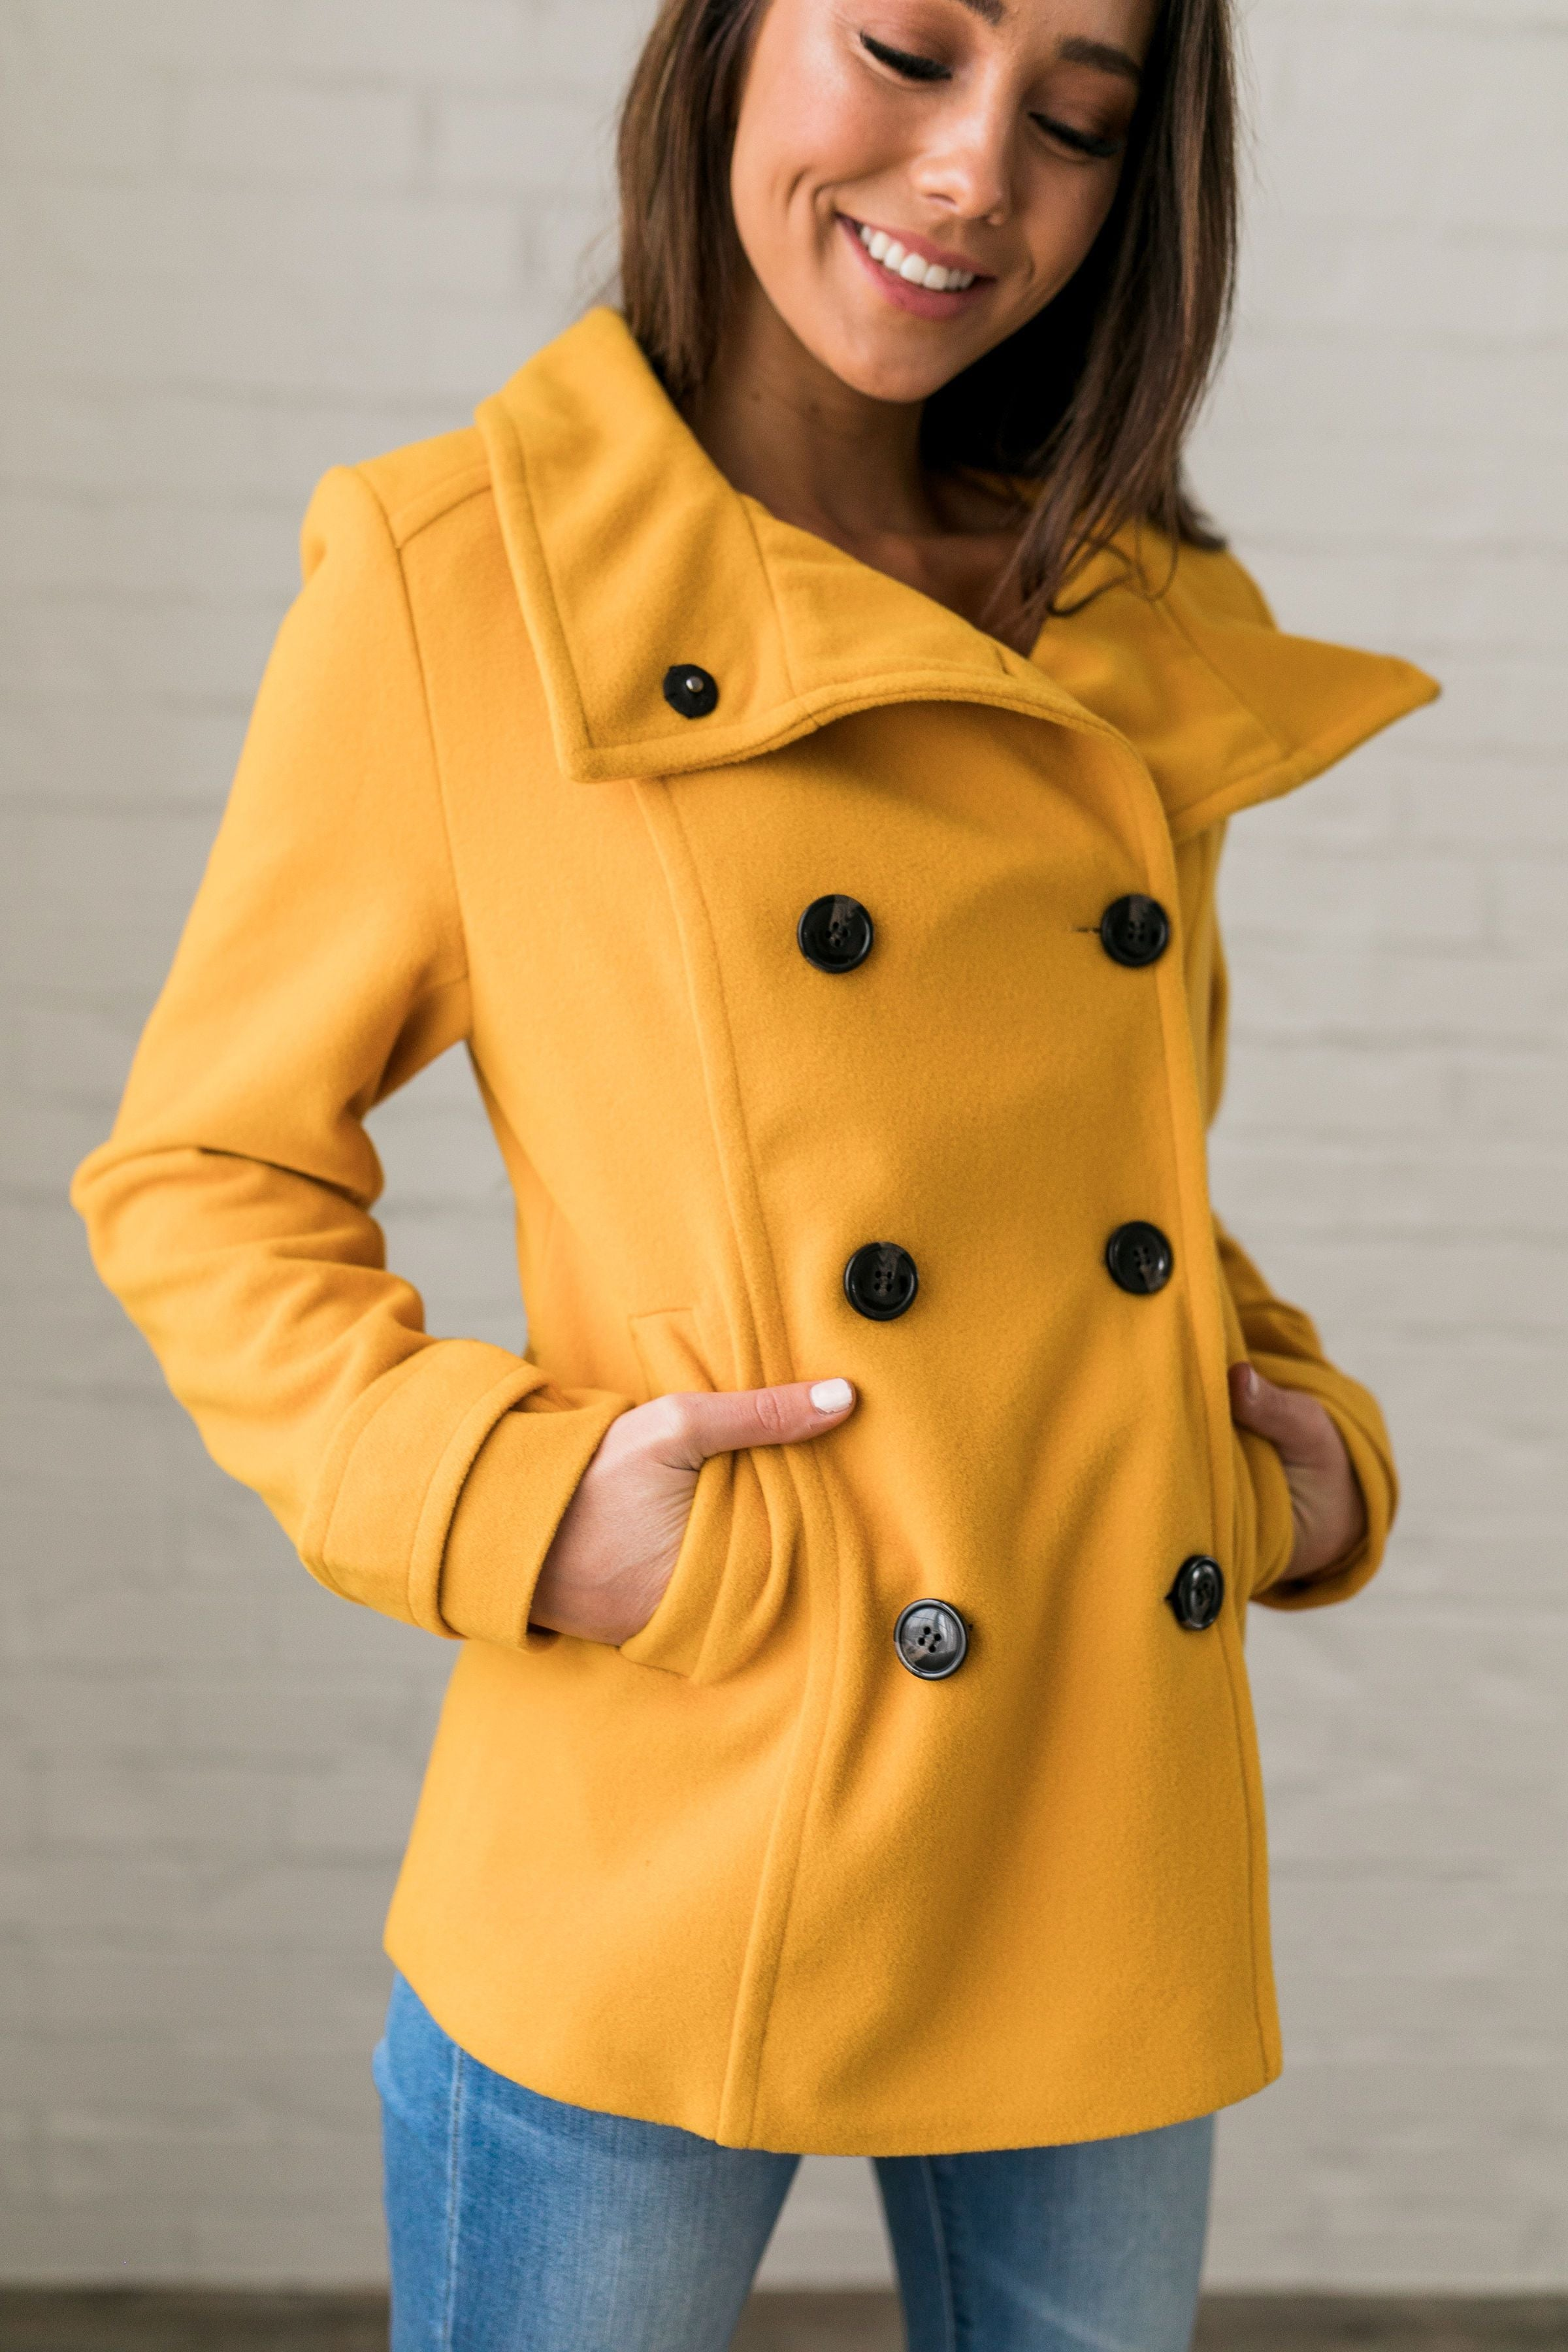 for whole family new appearance top brands Sunshine Yellow Peacoat - ALL SALES FINAL